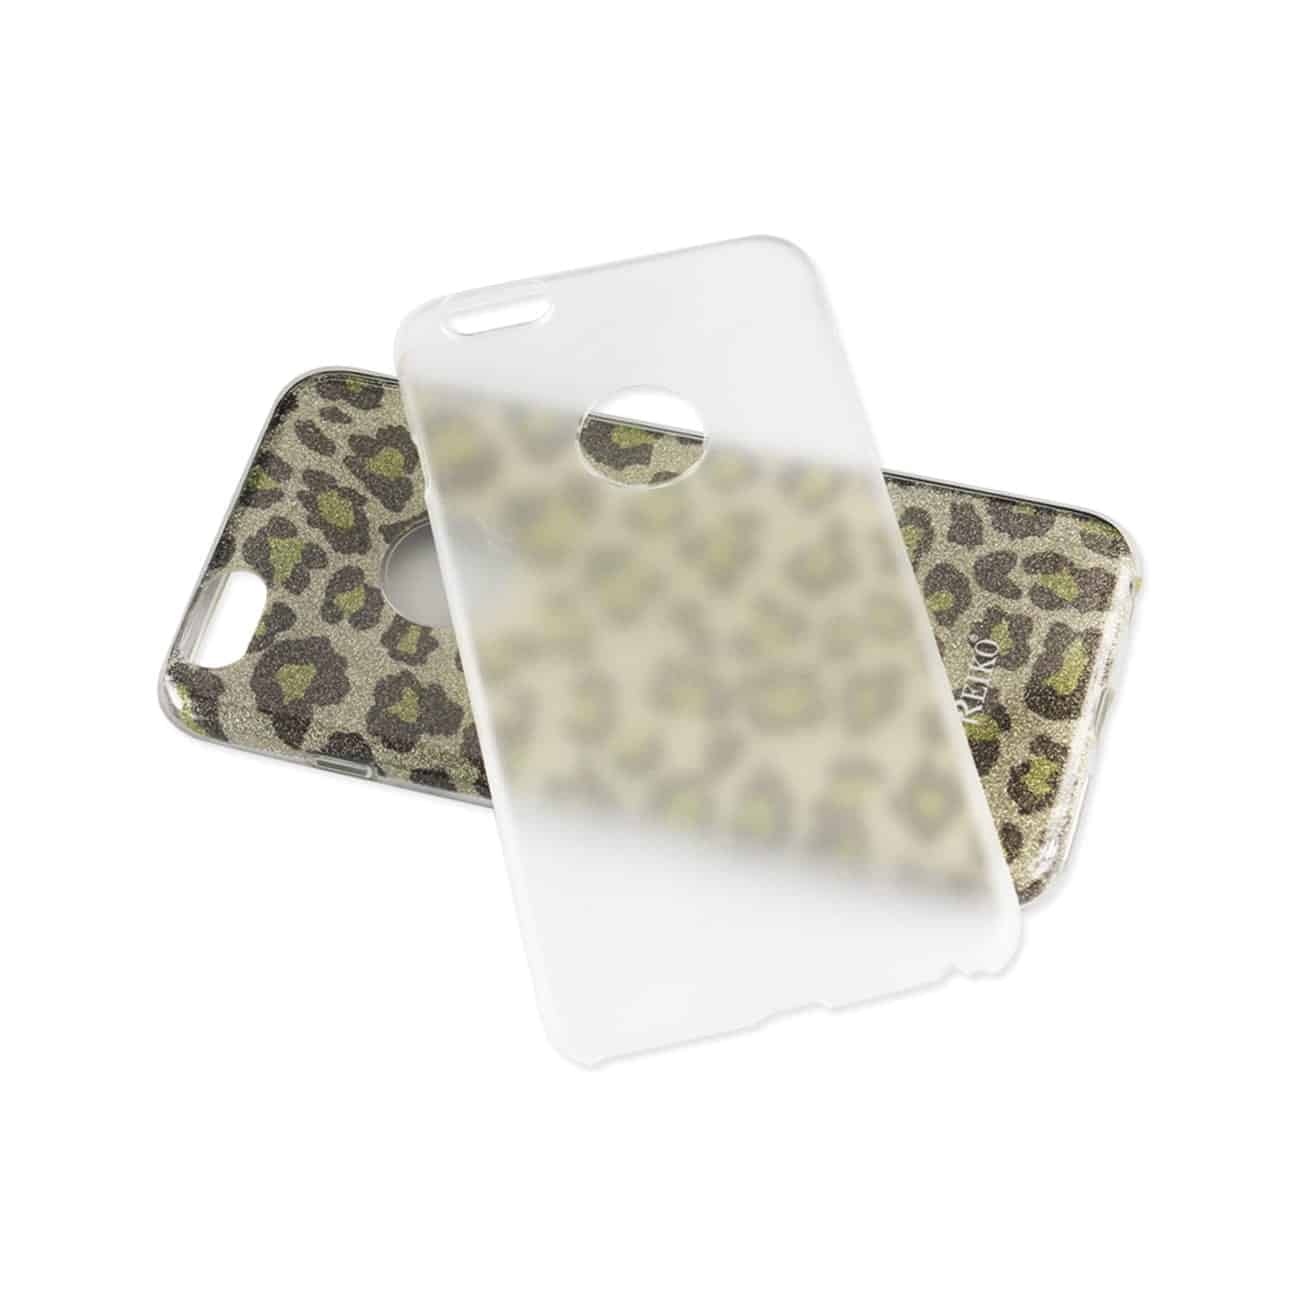 IPHONE 6/ 6S SHINE GLITTER SHIMMER LEOPARD HYBRID CASE IN LEOPARD GOLD